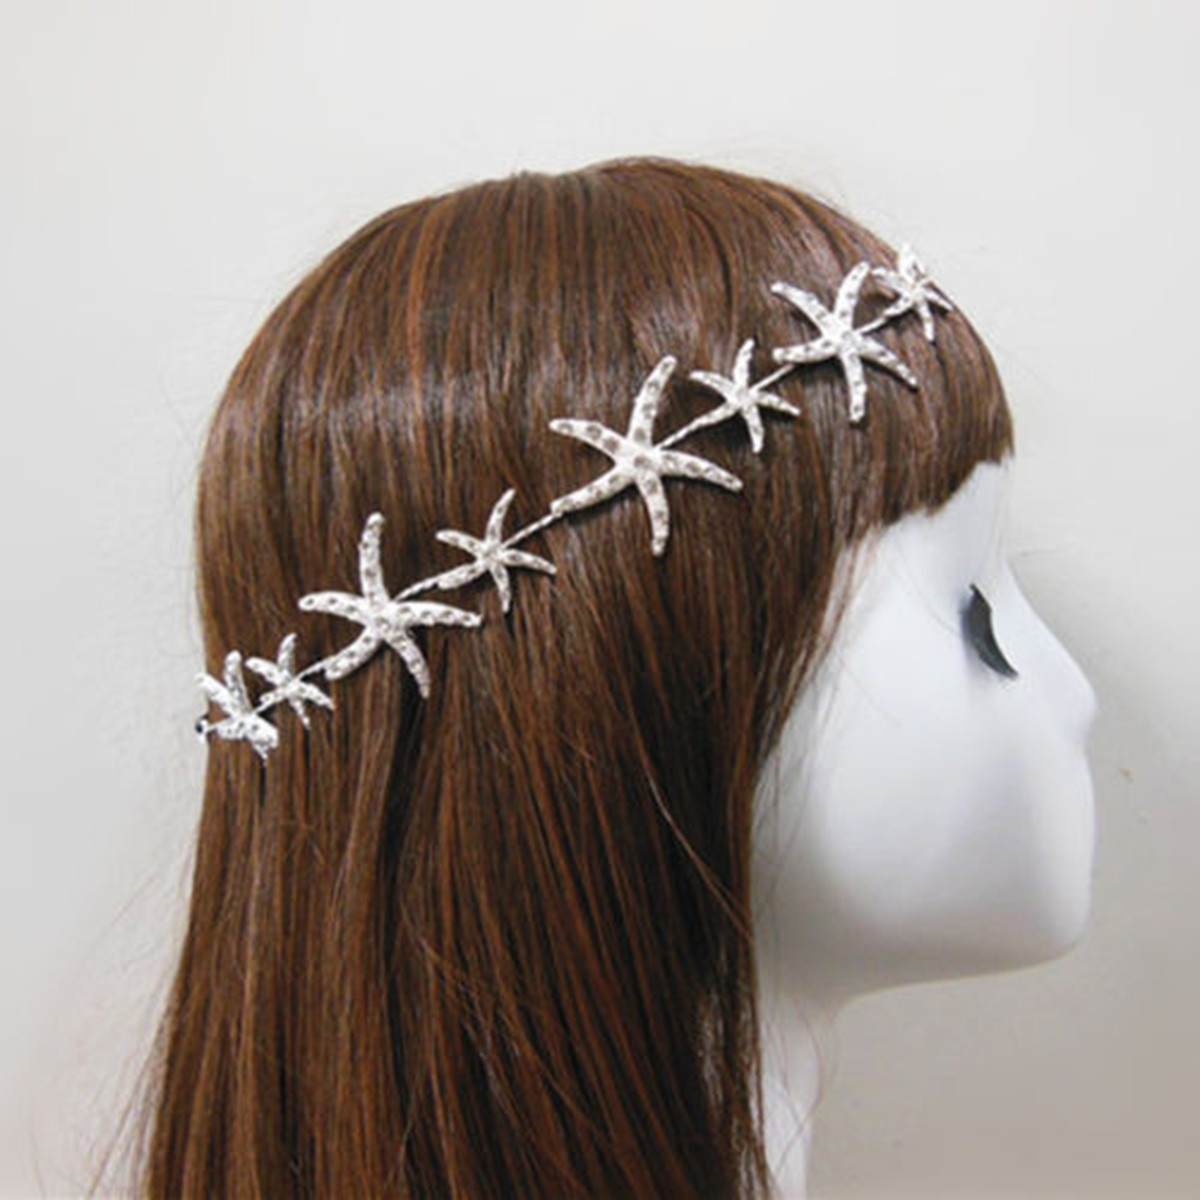 Starfish Crystal Rhinestone Bridal Tiara Crown Headbrand Hair Band Wedding Prom Accessories